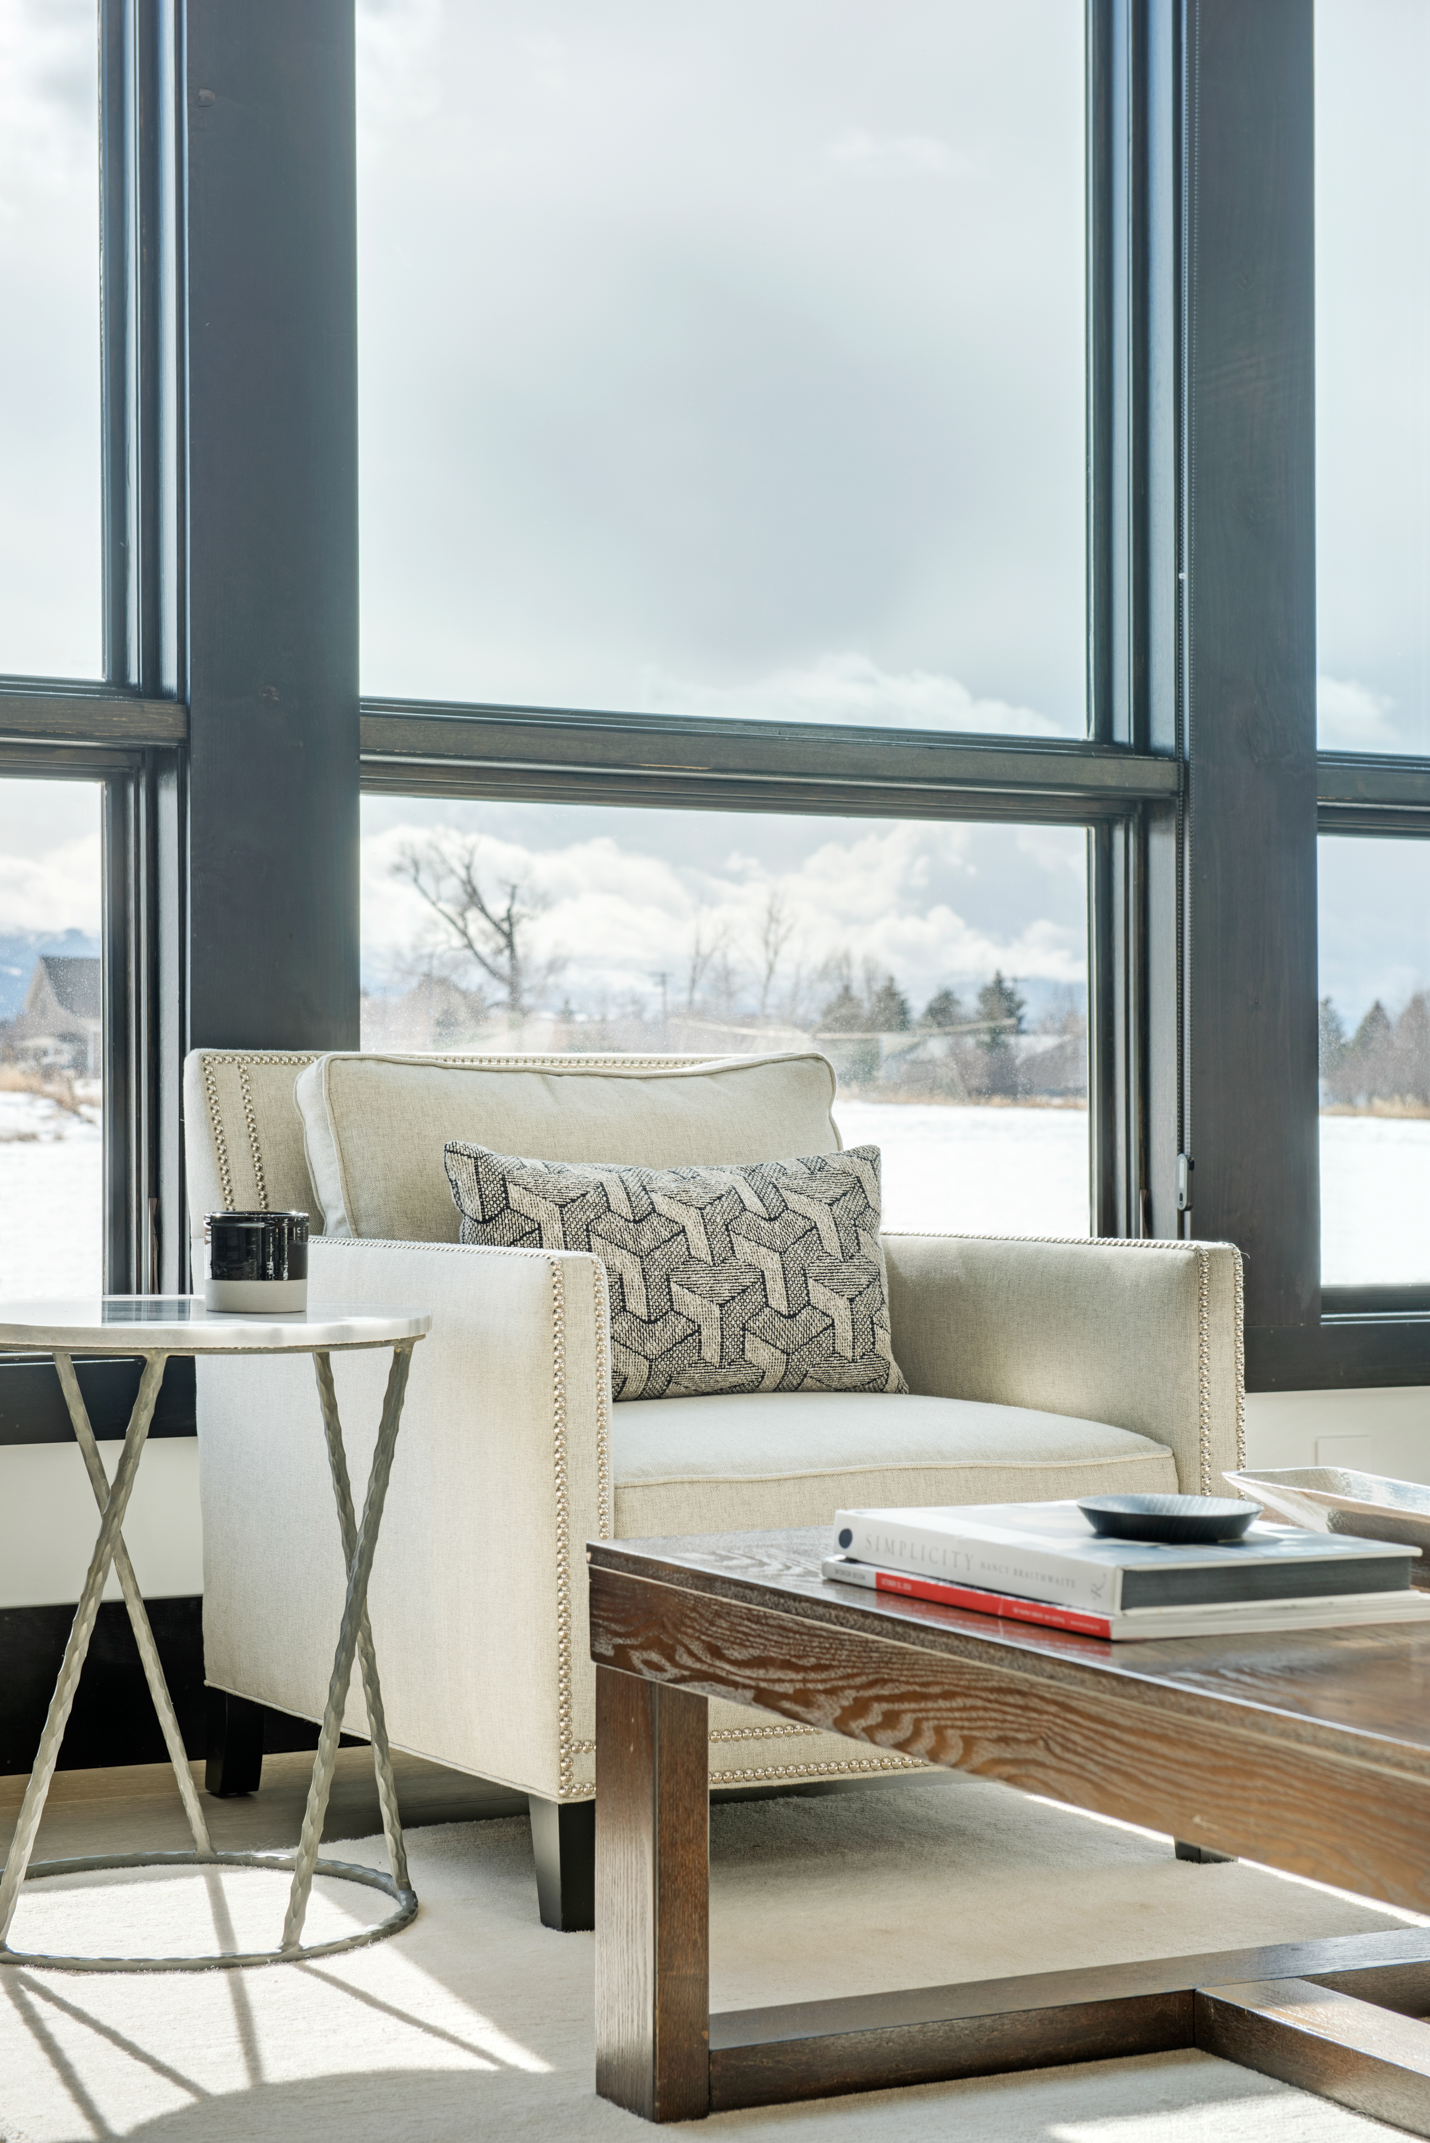 The great room has amazing views and the contemporary look of the windows is complimented with the stylish furnishings. I love the geometric patten on the pillow!